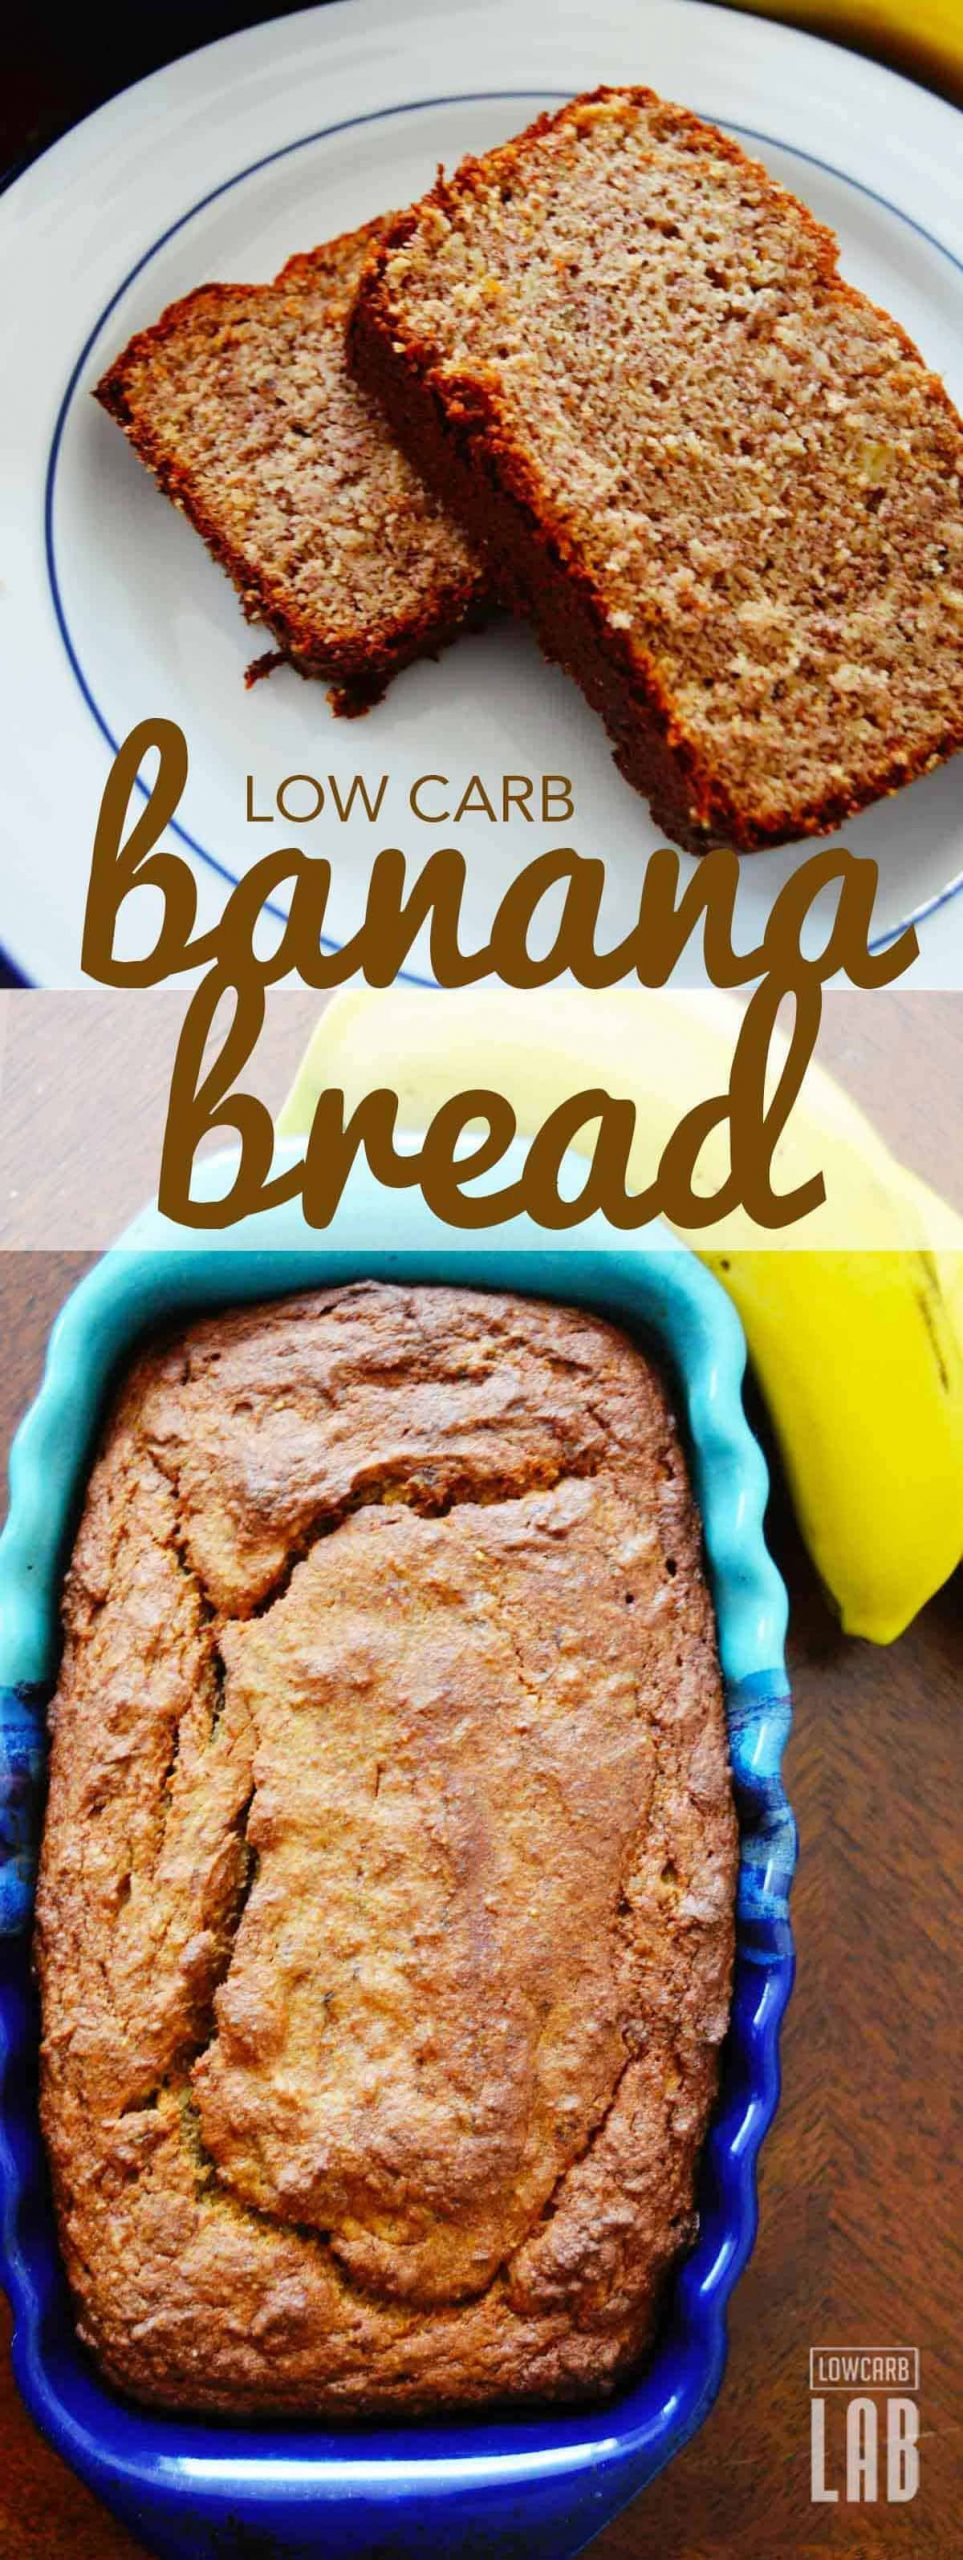 Healthy Low Carb Bread  Delicious Low Carb Banana Bread Recipe